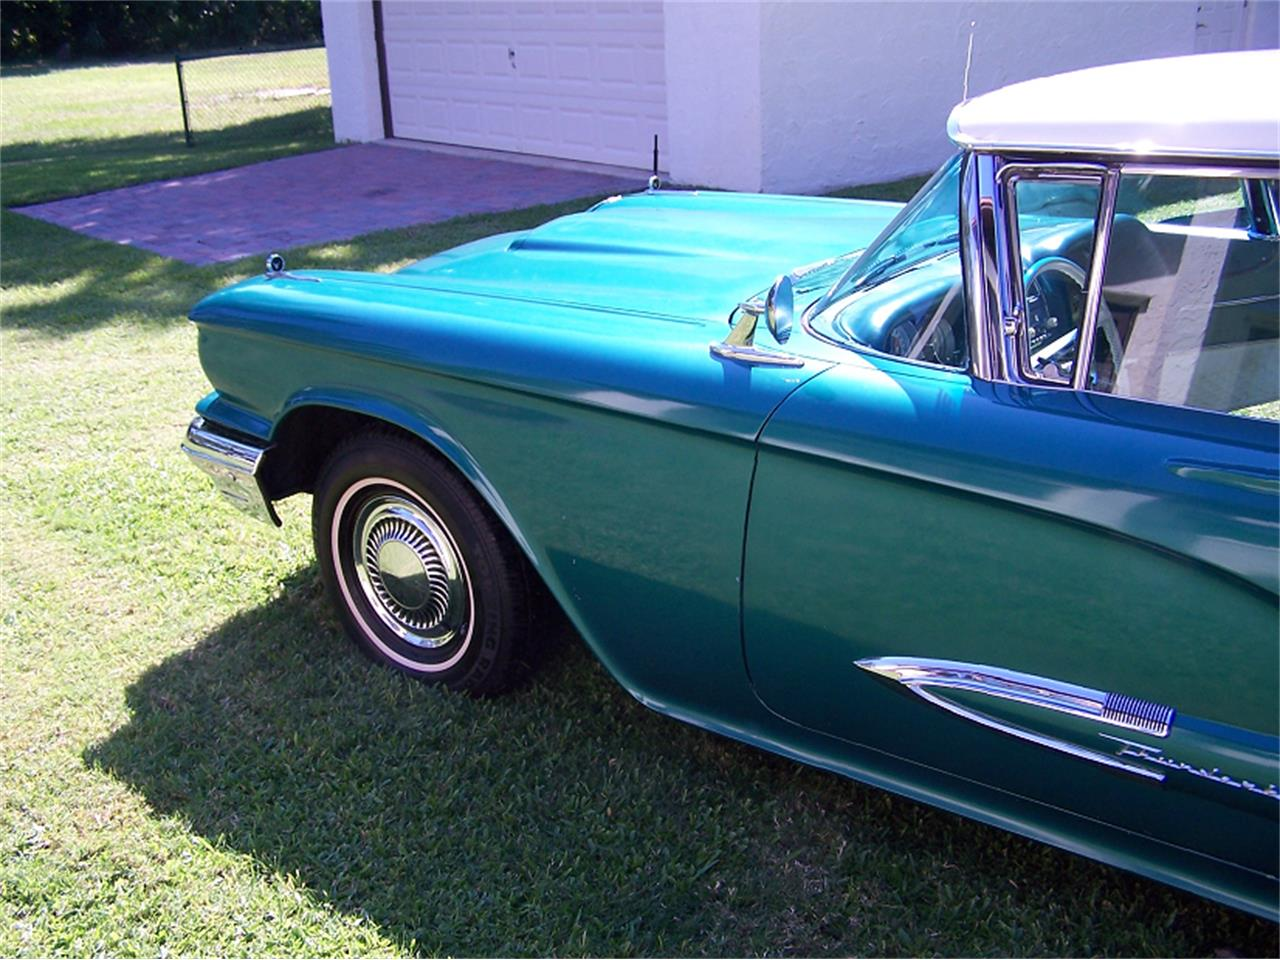 Large Picture of 1959 Ford Thunderbird located in Florida Offered by a Private Seller - LLRY